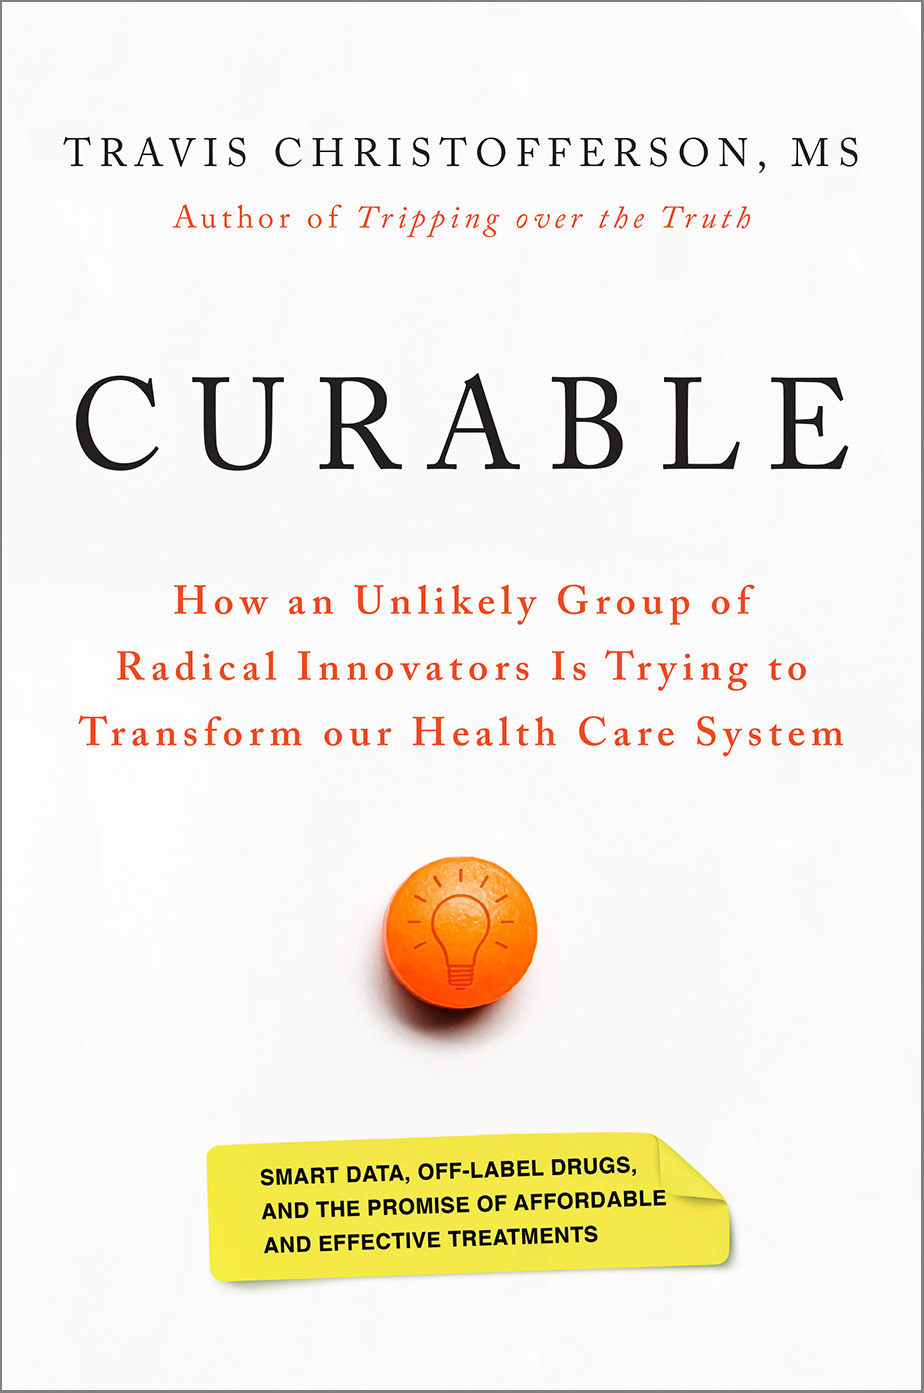 The Curable cover